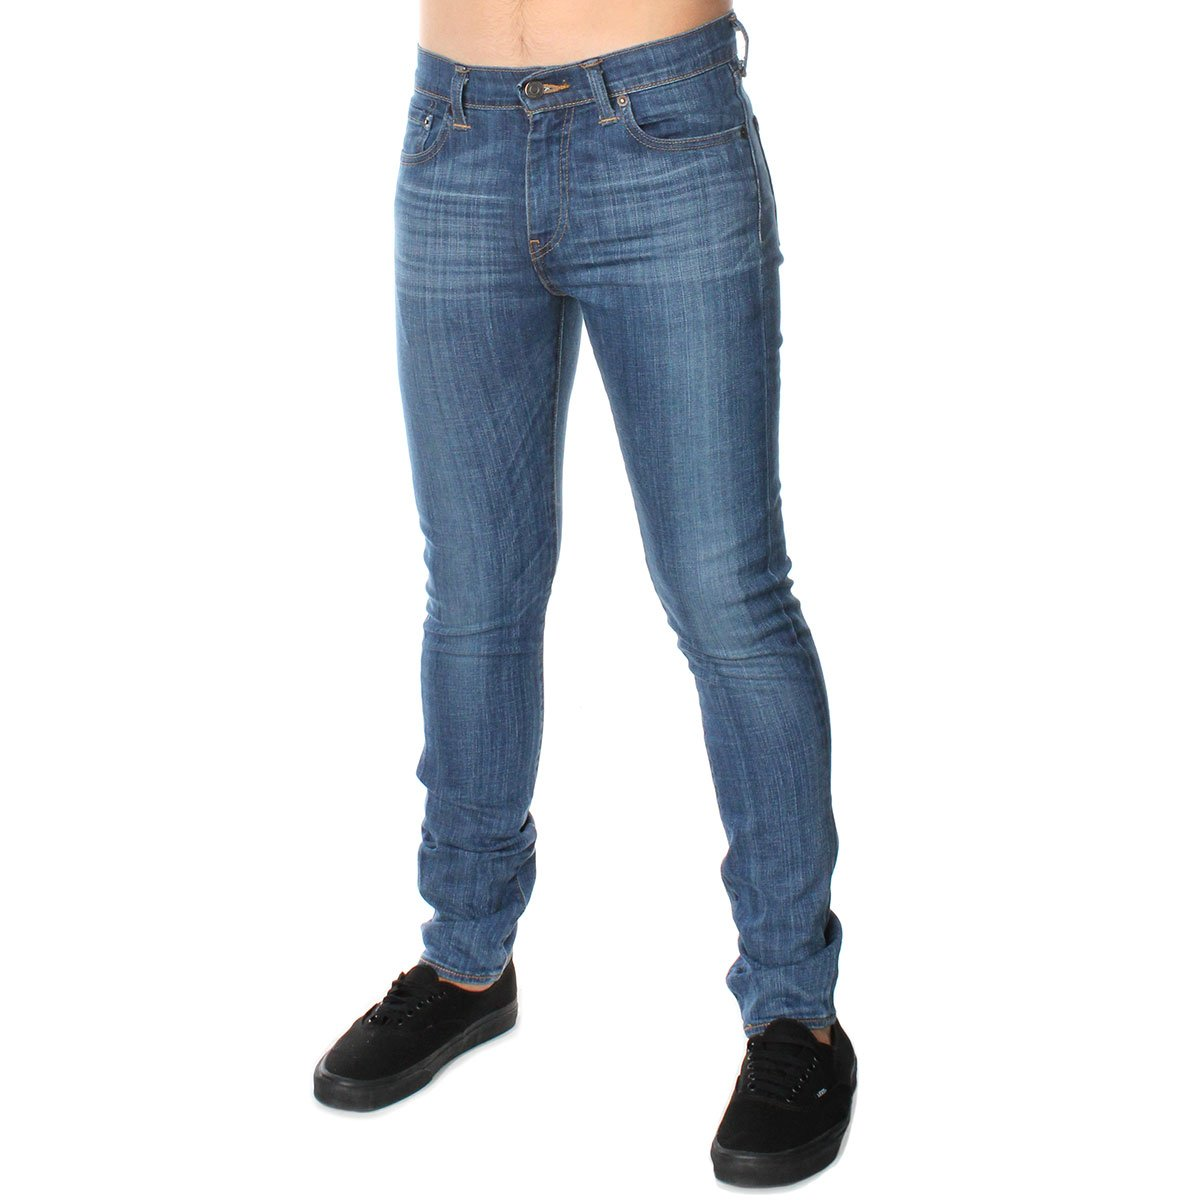 levis 510 jeans levis from the menswear site uk